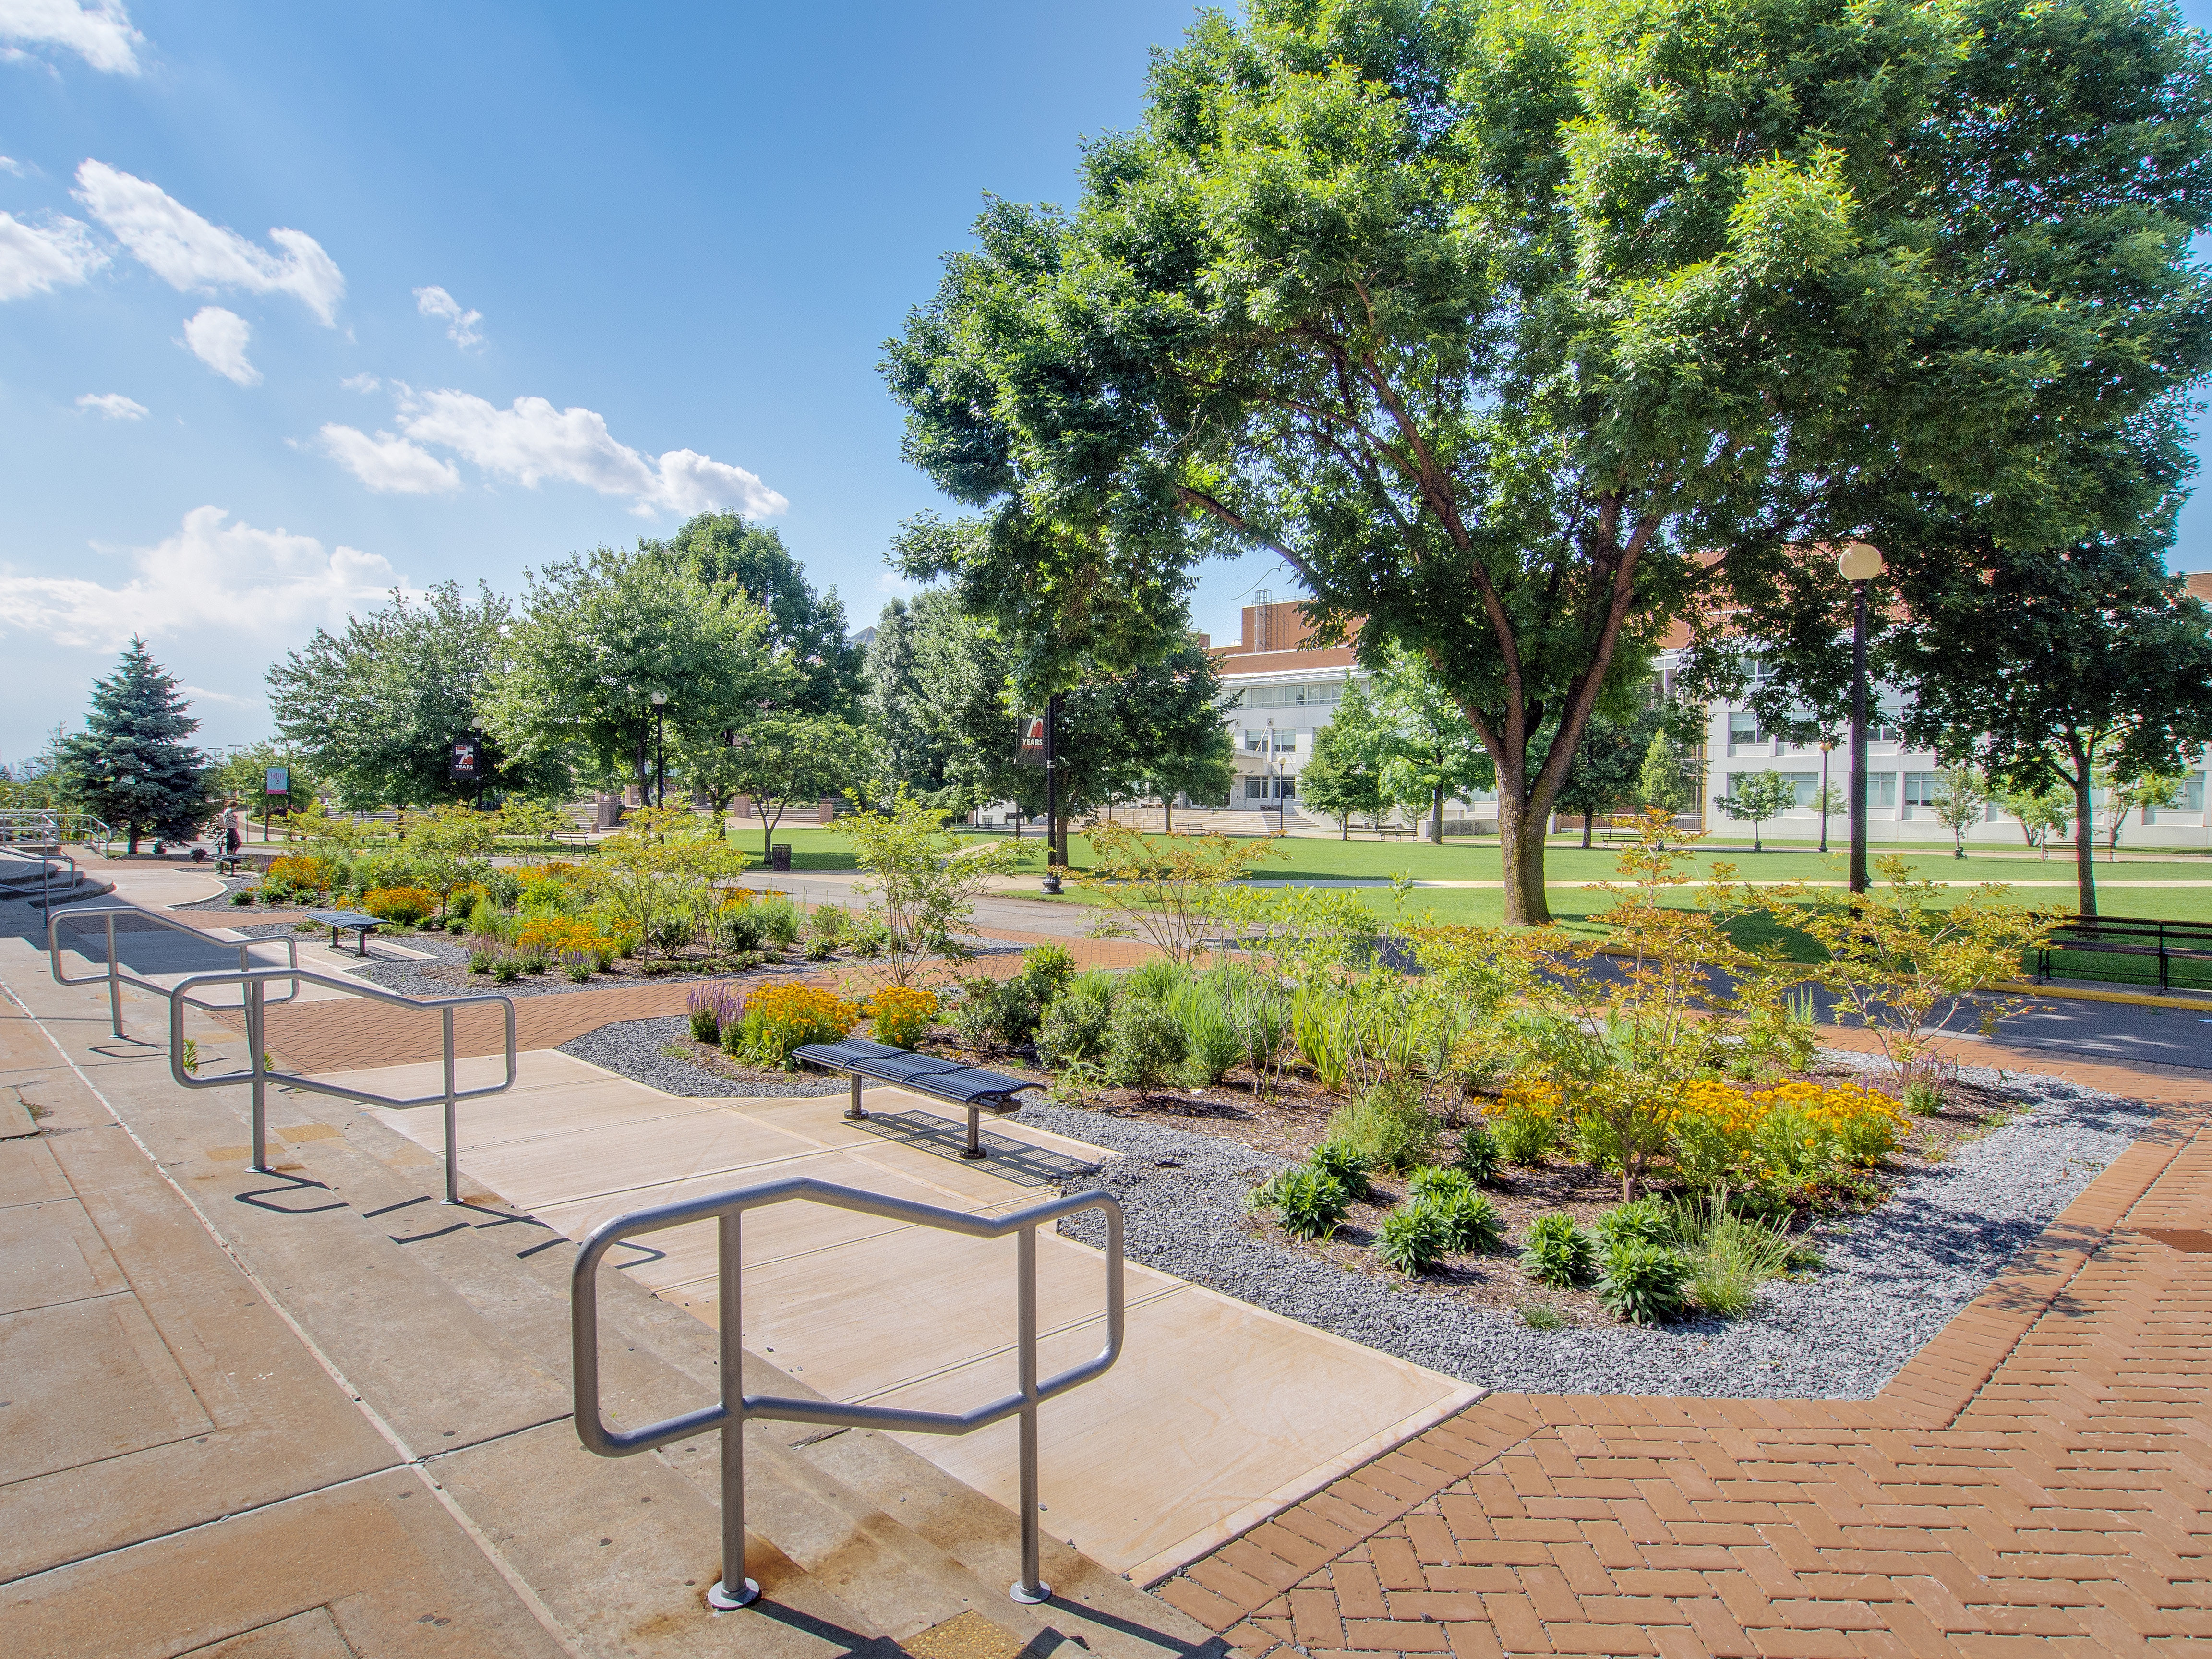 Queens ny college basketball scores for Landscape architecture adelaide uni